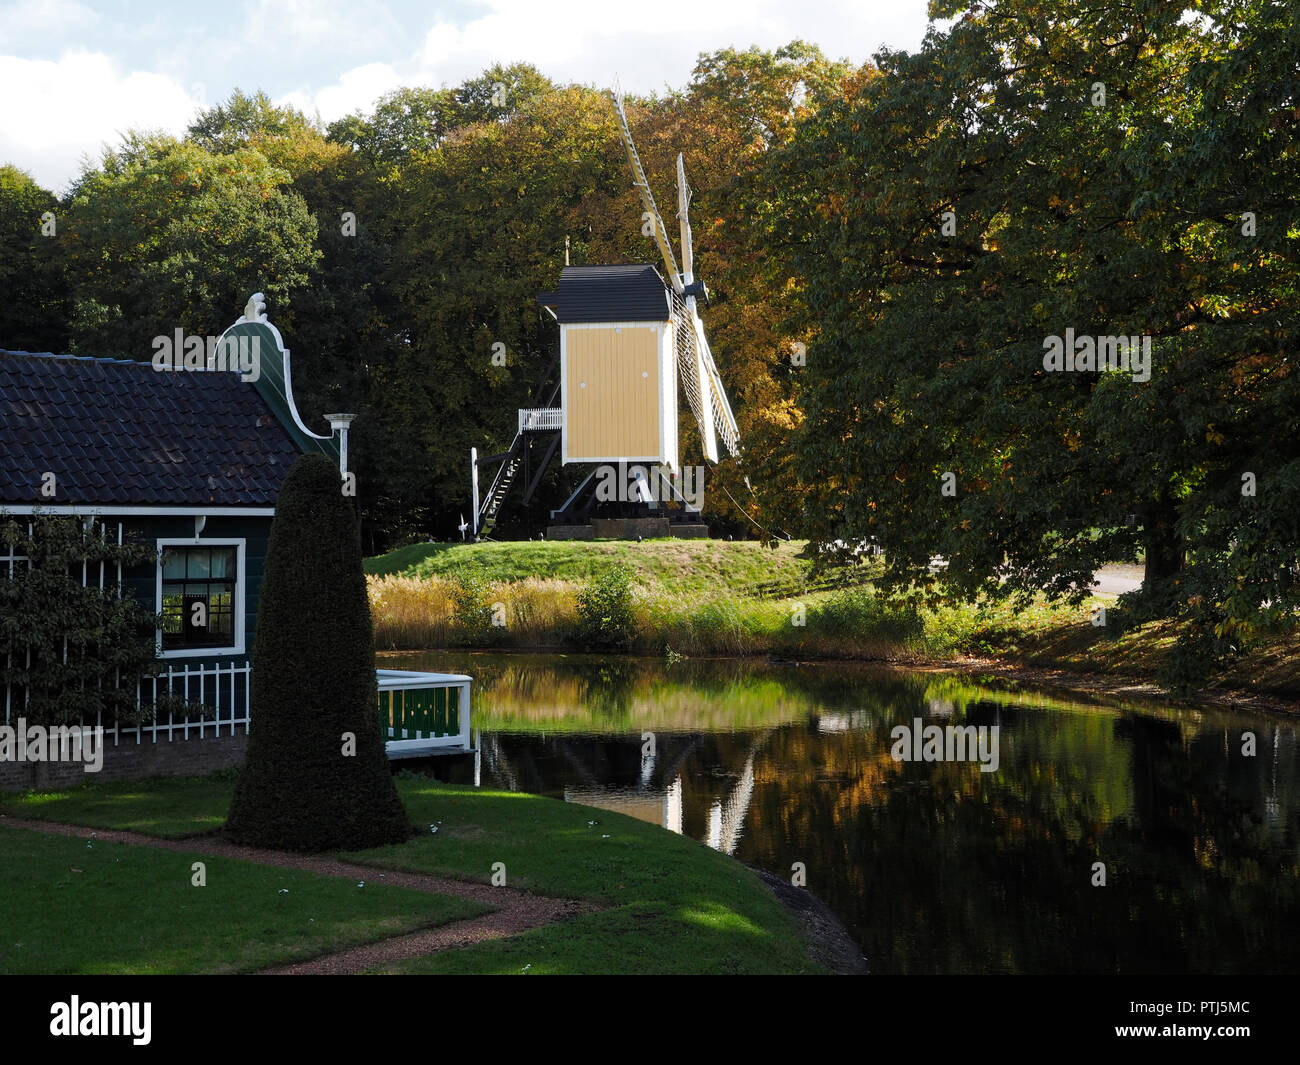 The Dutch open air museum in Arnhem is a large park where typical Dutch historic buildings are being collected, it is a popular tourist attraction in  - Stock Image